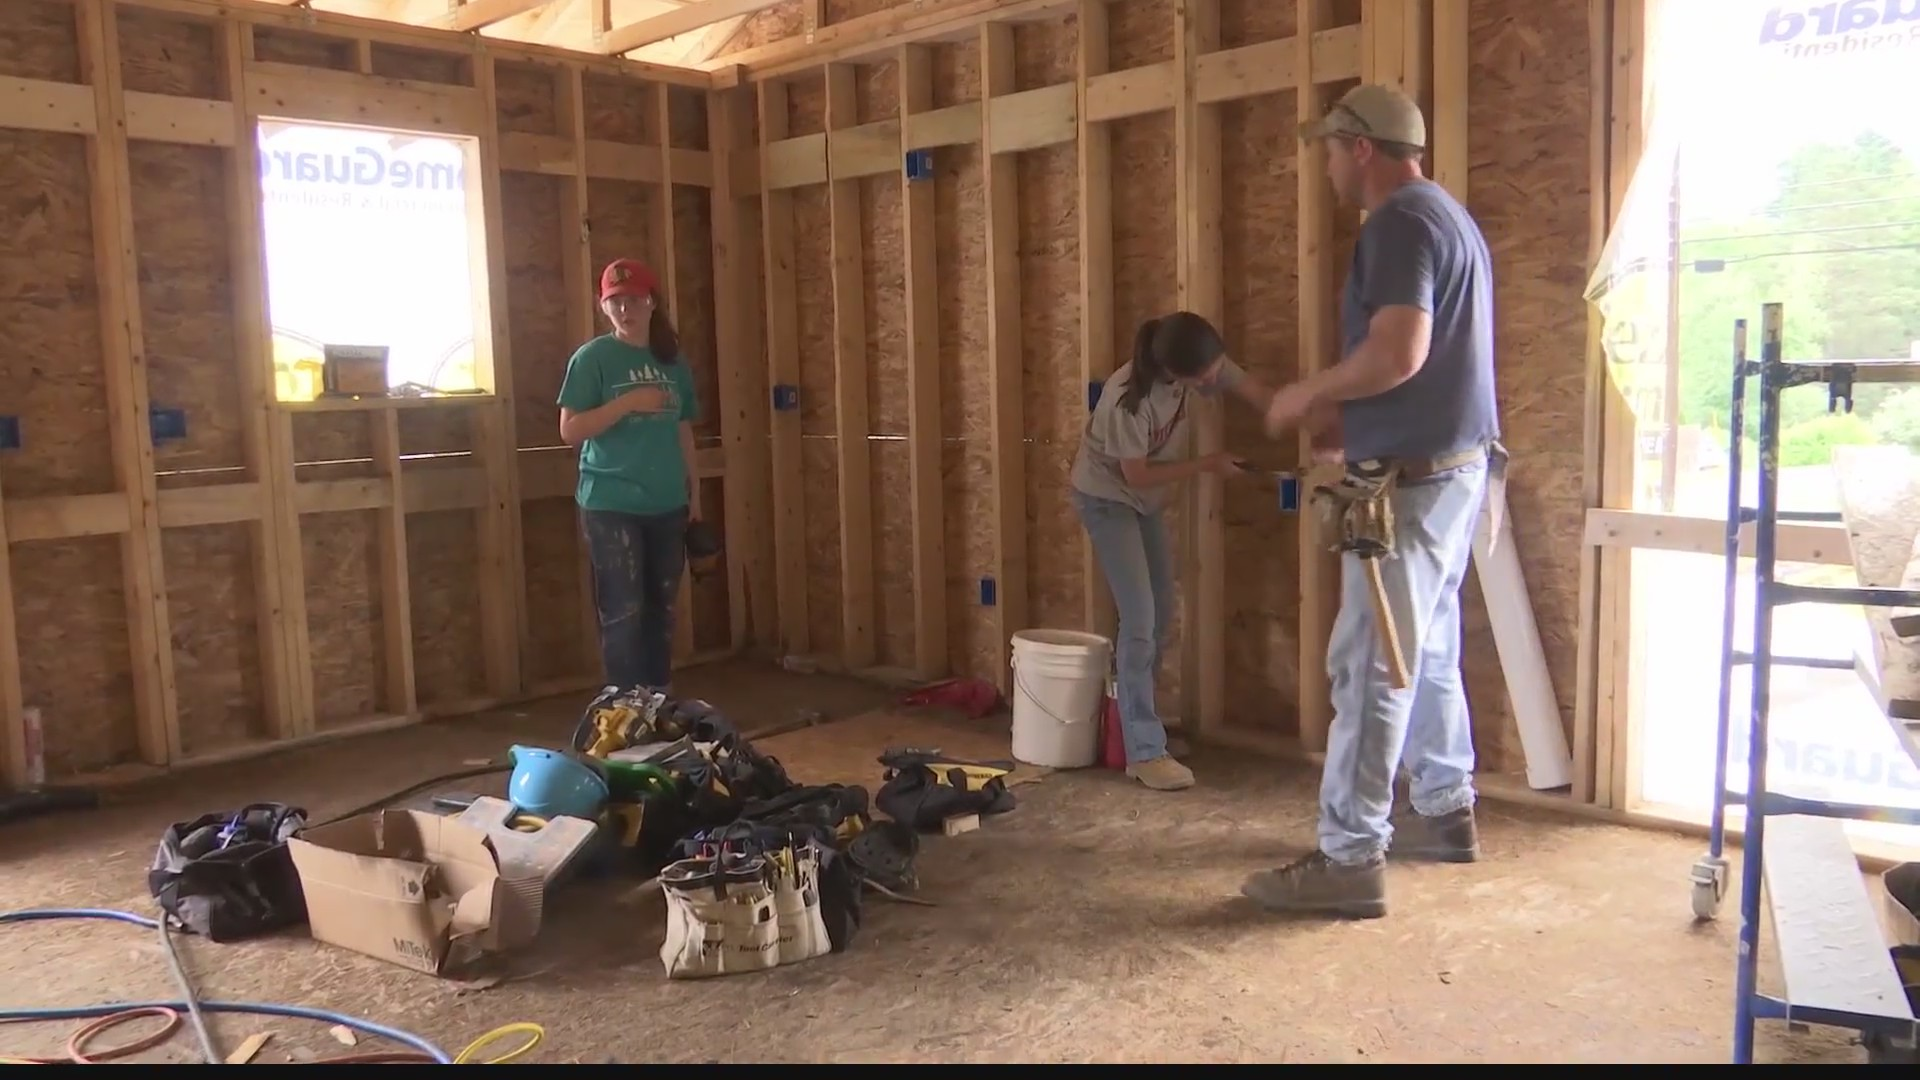 Volunteers help build house for family in need